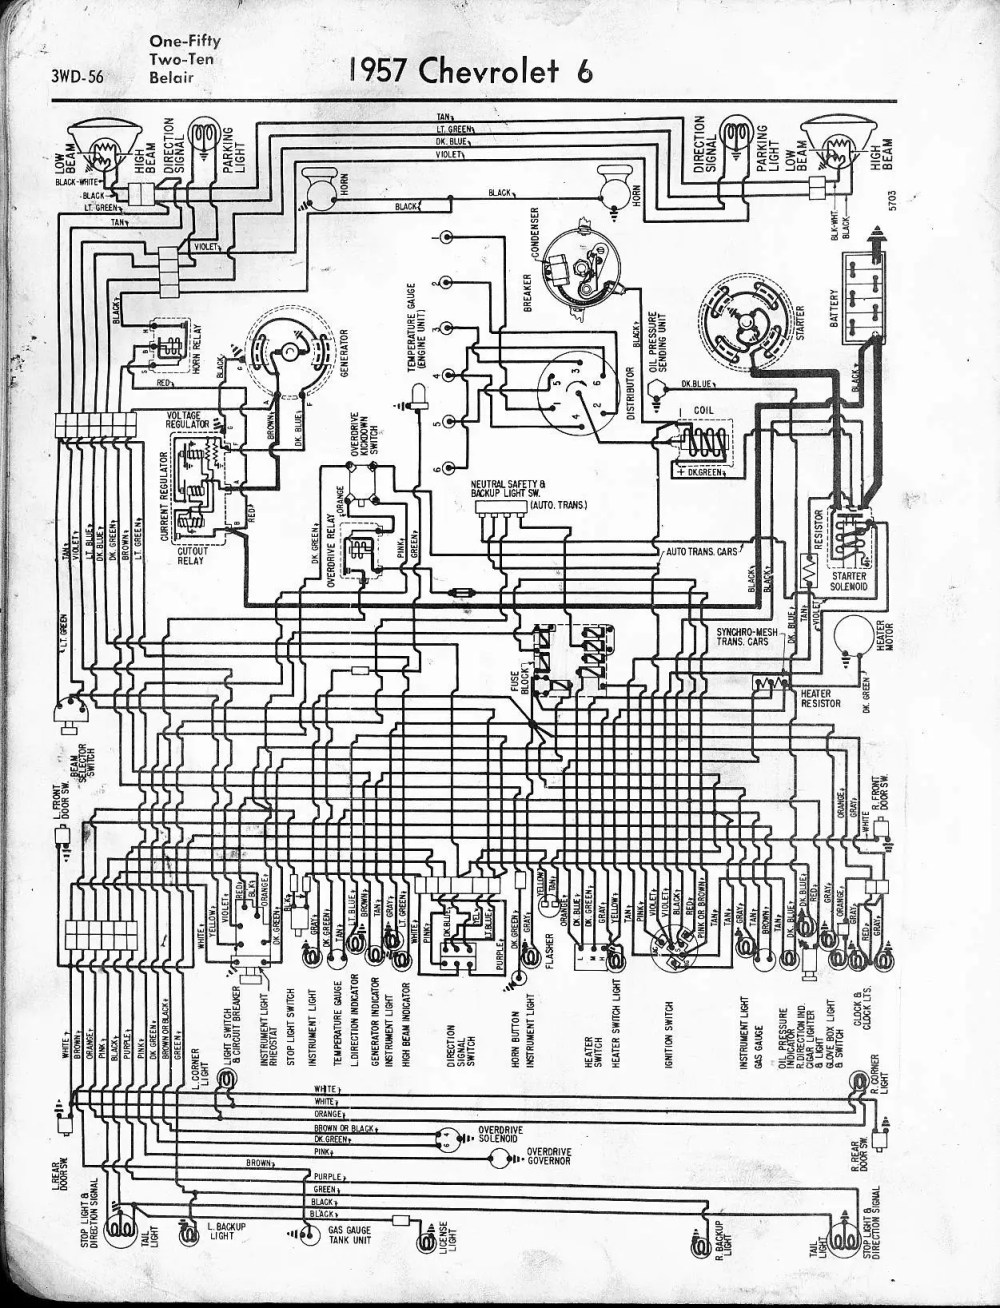 medium resolution of painless wiring for 1957 chevy wiring diagram used 1957 chevy truck headlight switch wiring diagram 1957 chevy truck wiring